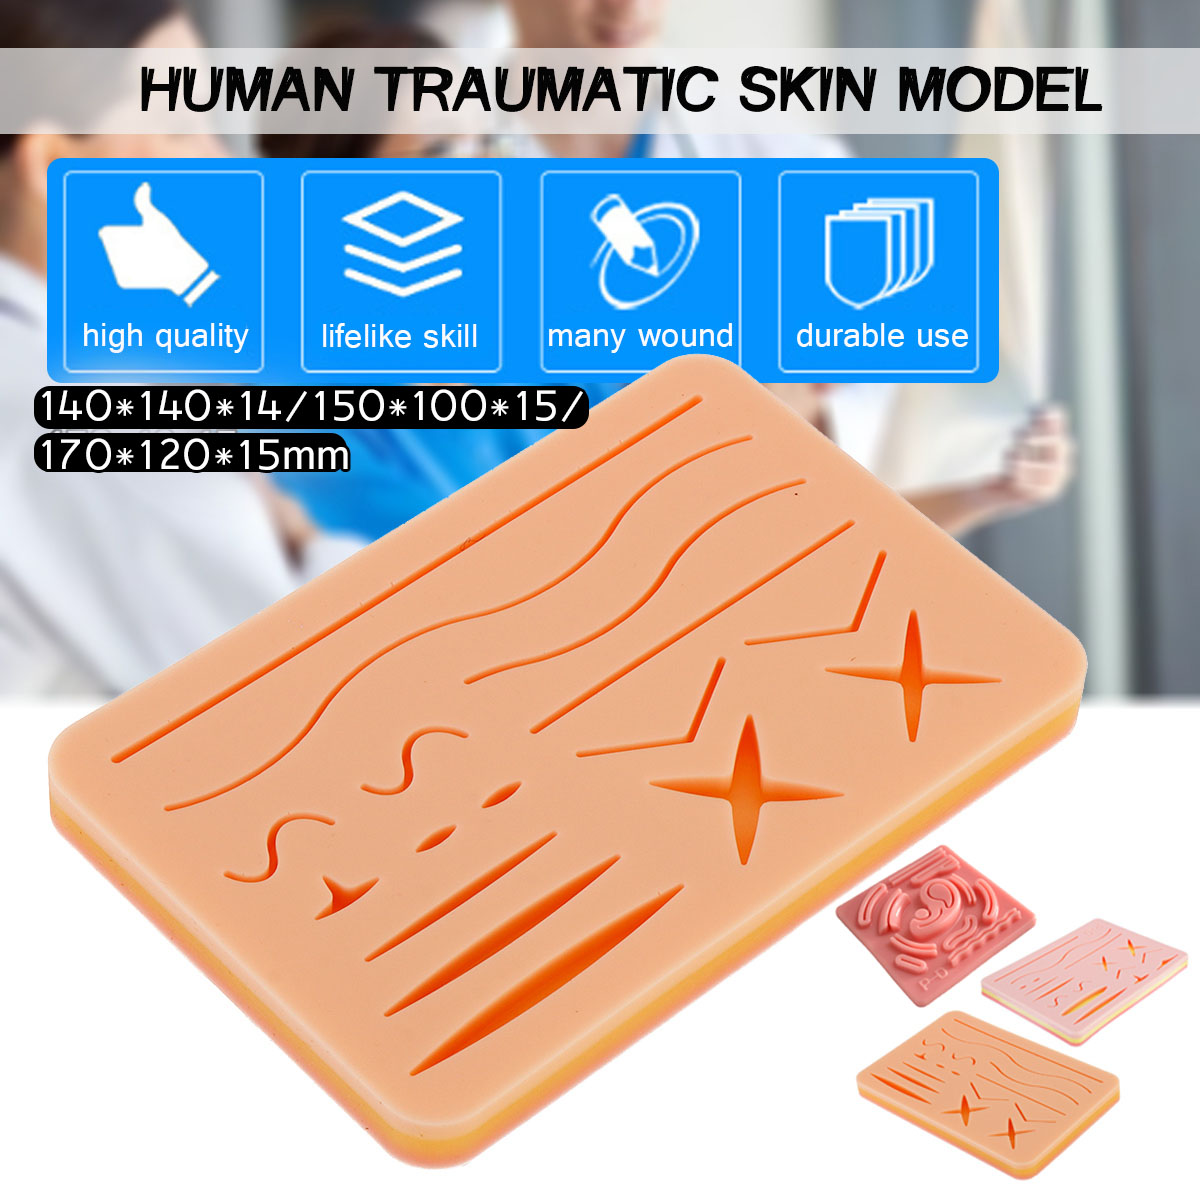 Medical Suture Training Kit Human Traumatic Skin Model Suturing Practice Training Pad Set Doctor Nurse Teaching Resources